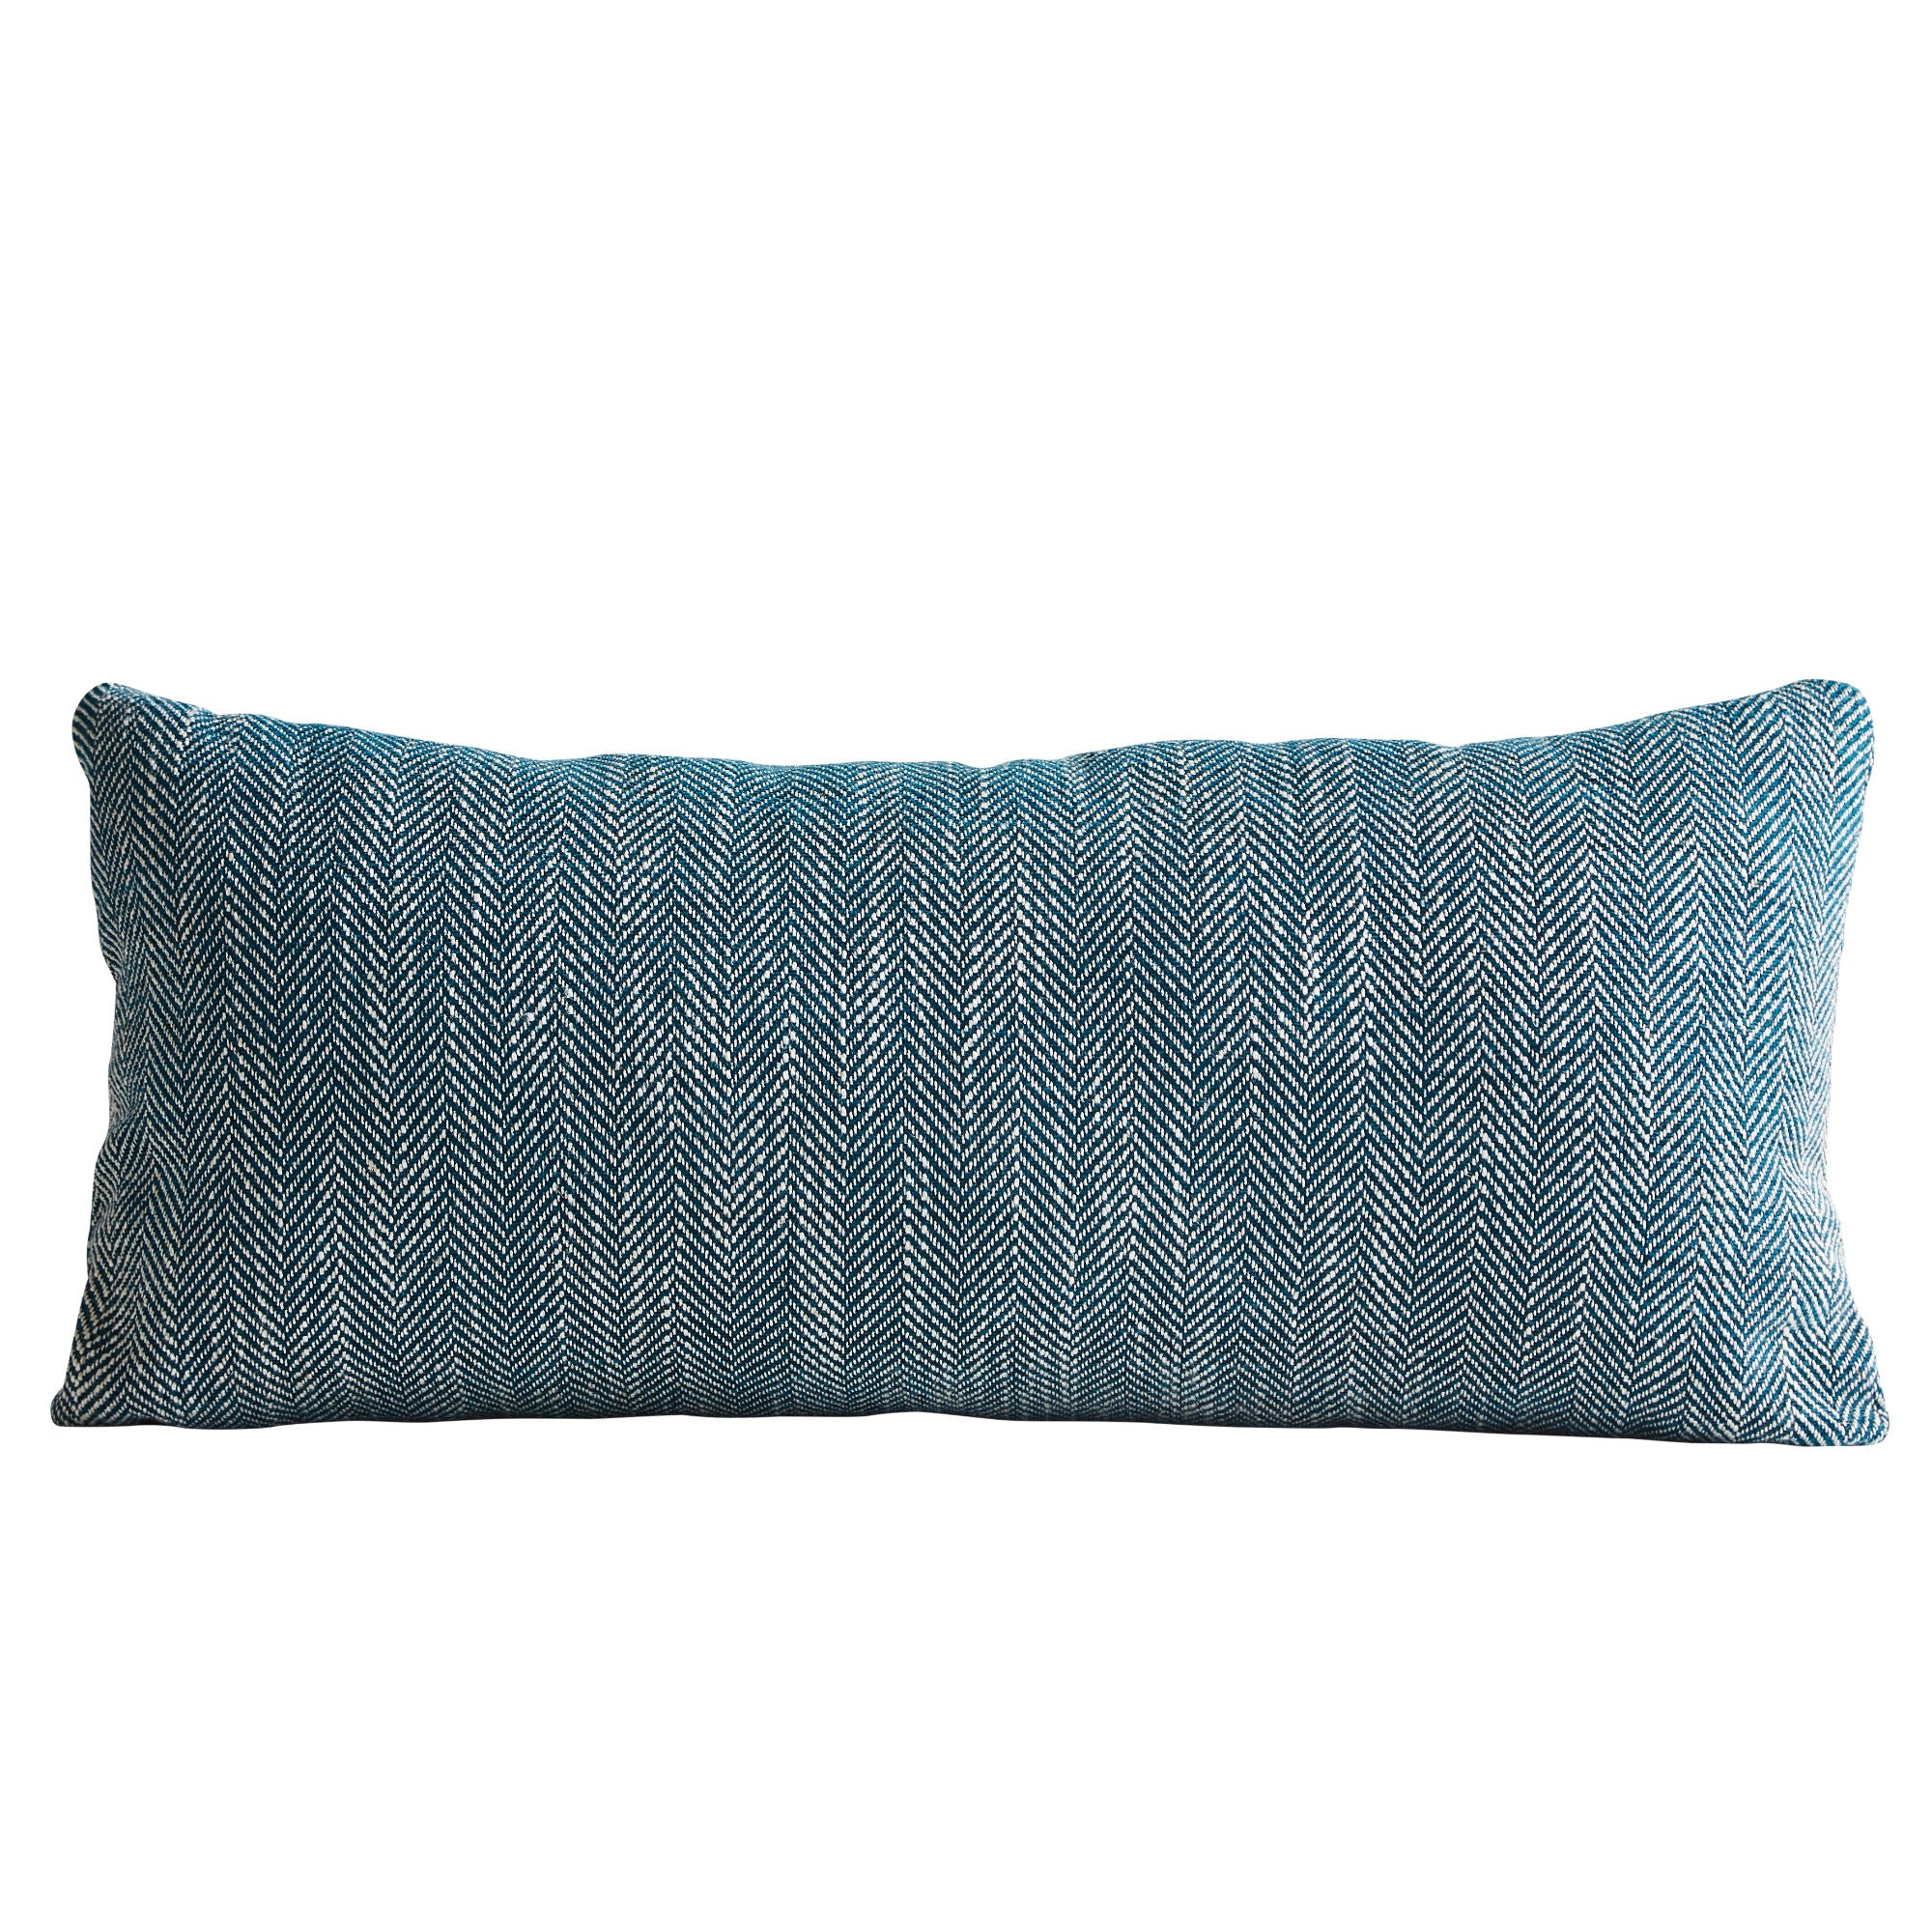 Woud Herrinbone Cushion , Petrol Blue